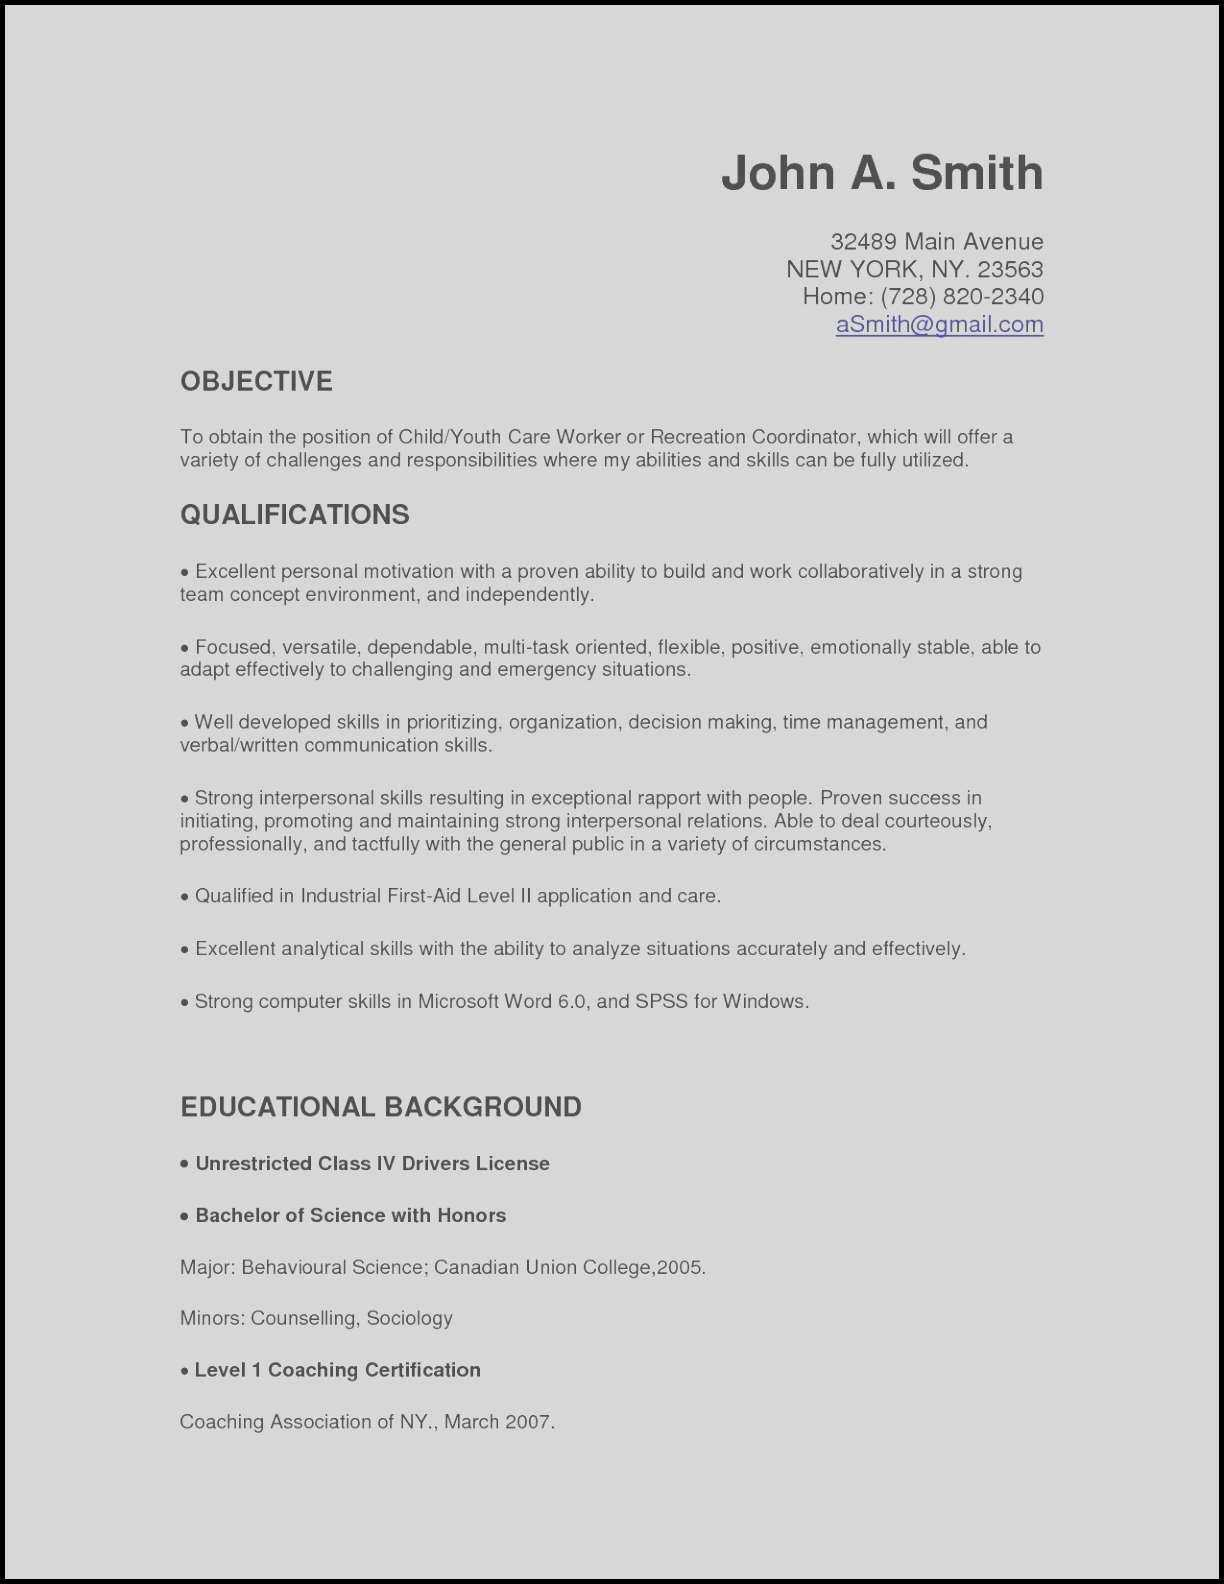 Autopsy Report Template   Glendale Community For Blank Inside Blank Autopsy Report Template